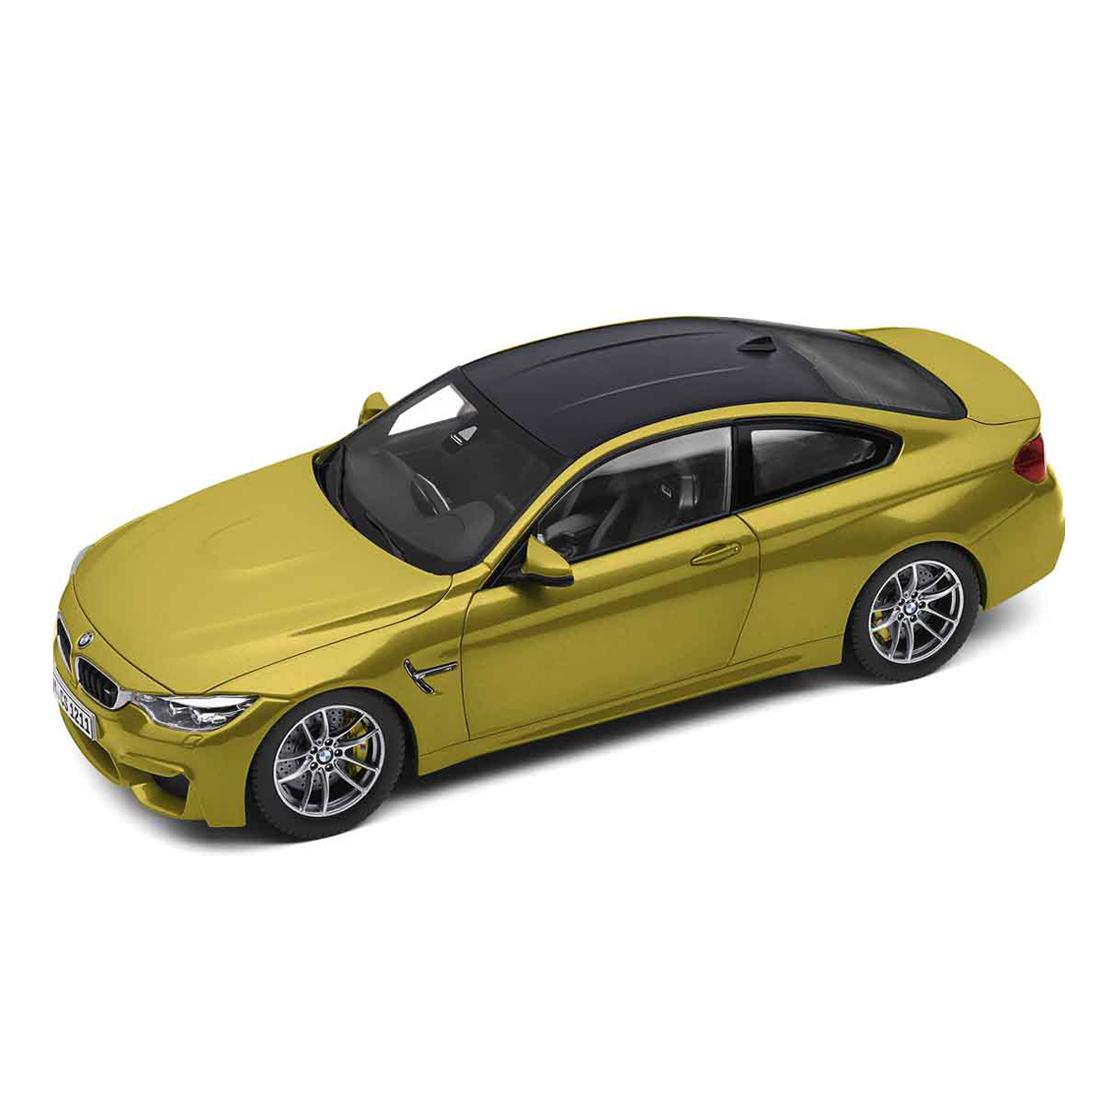 bmw m4 coup f82 remote control miniature. Black Bedroom Furniture Sets. Home Design Ideas